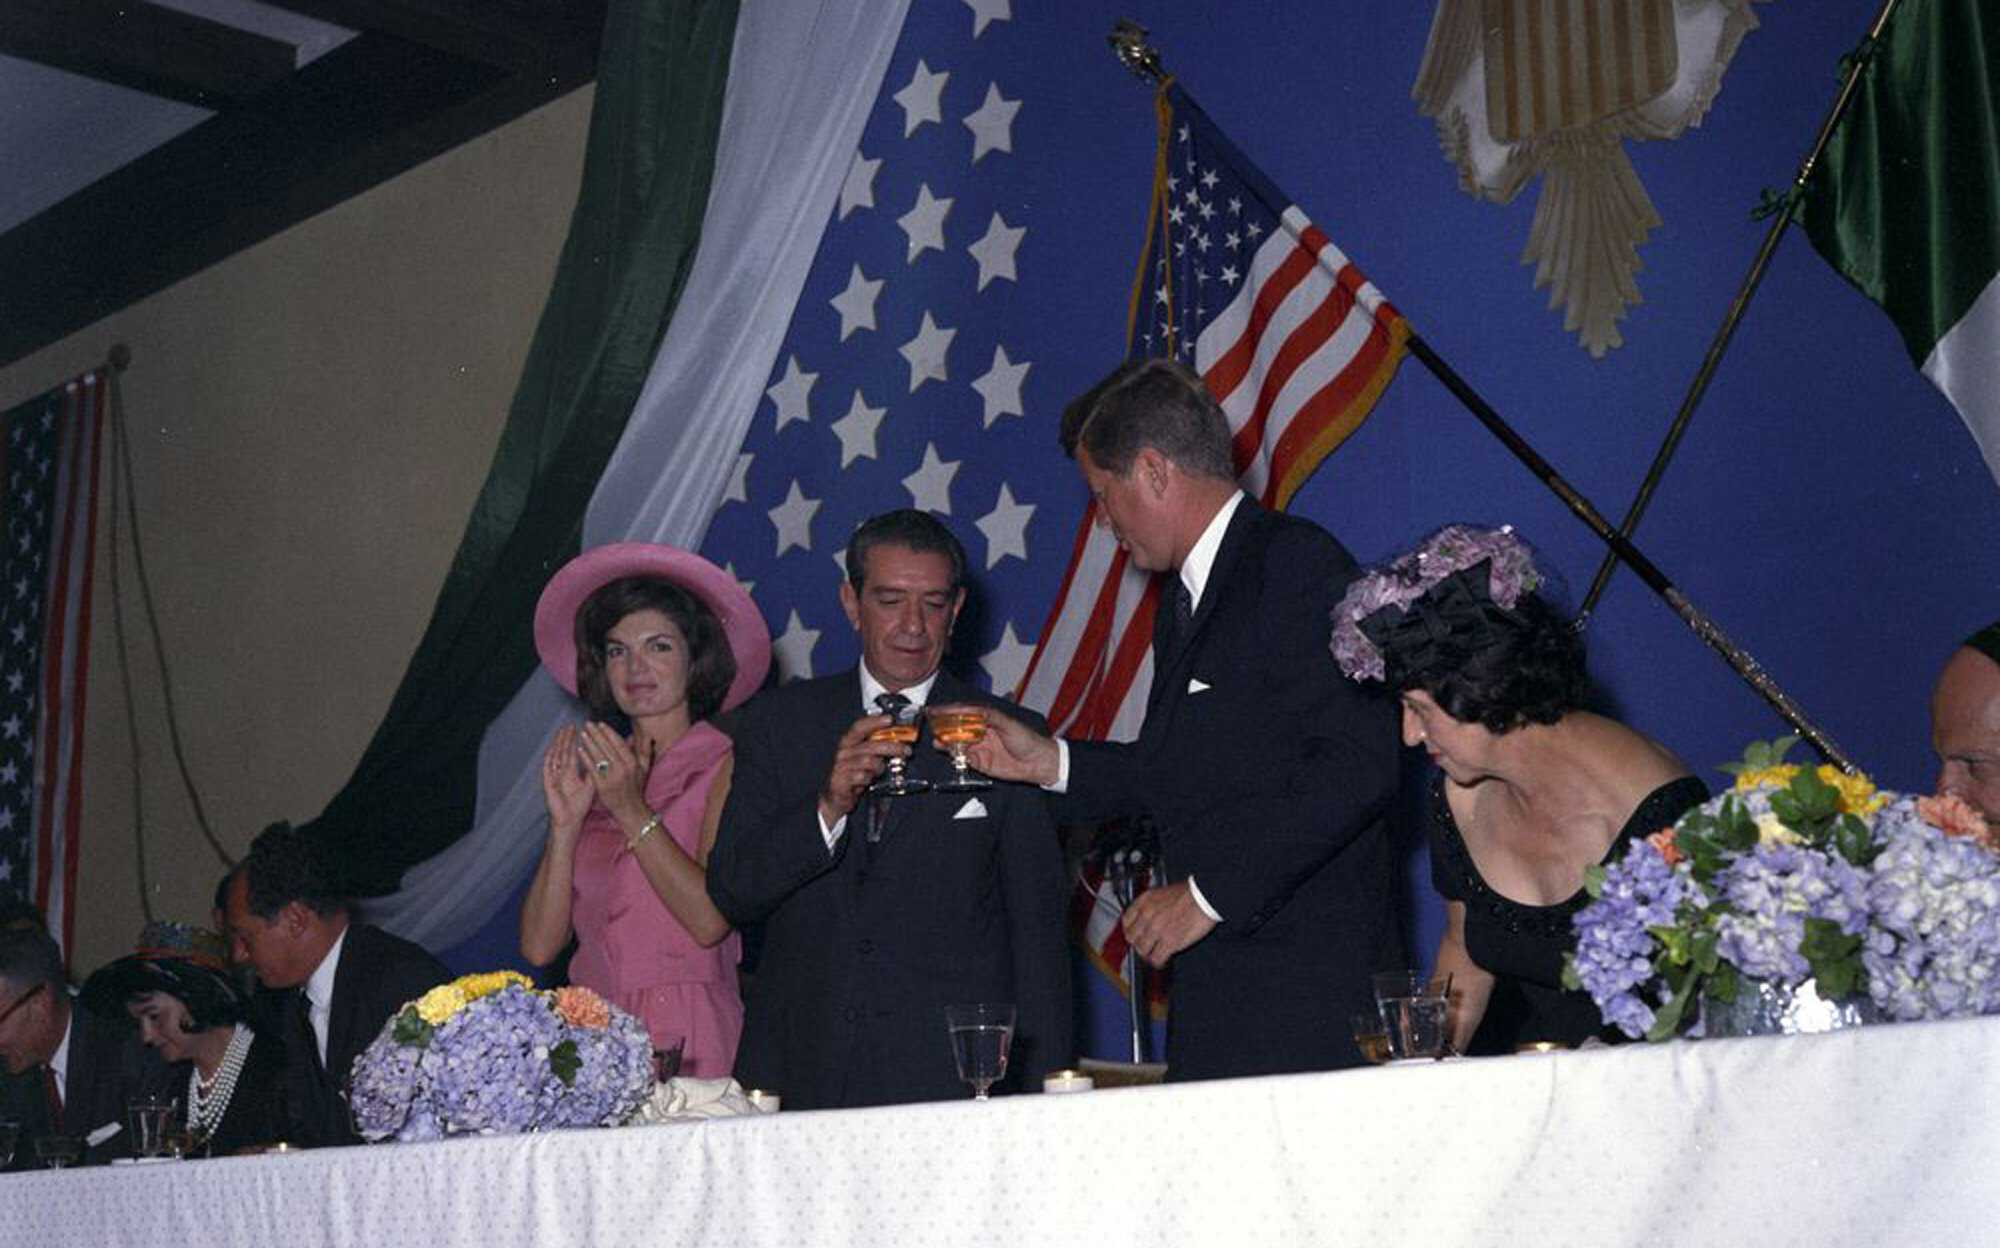 Kennedys-Foreign-President-John-F.-Kennedy-Attends-a-Luncheon-at-Hotel-María-Isabel-in-Mexico-City--JFK-Museum.jpg